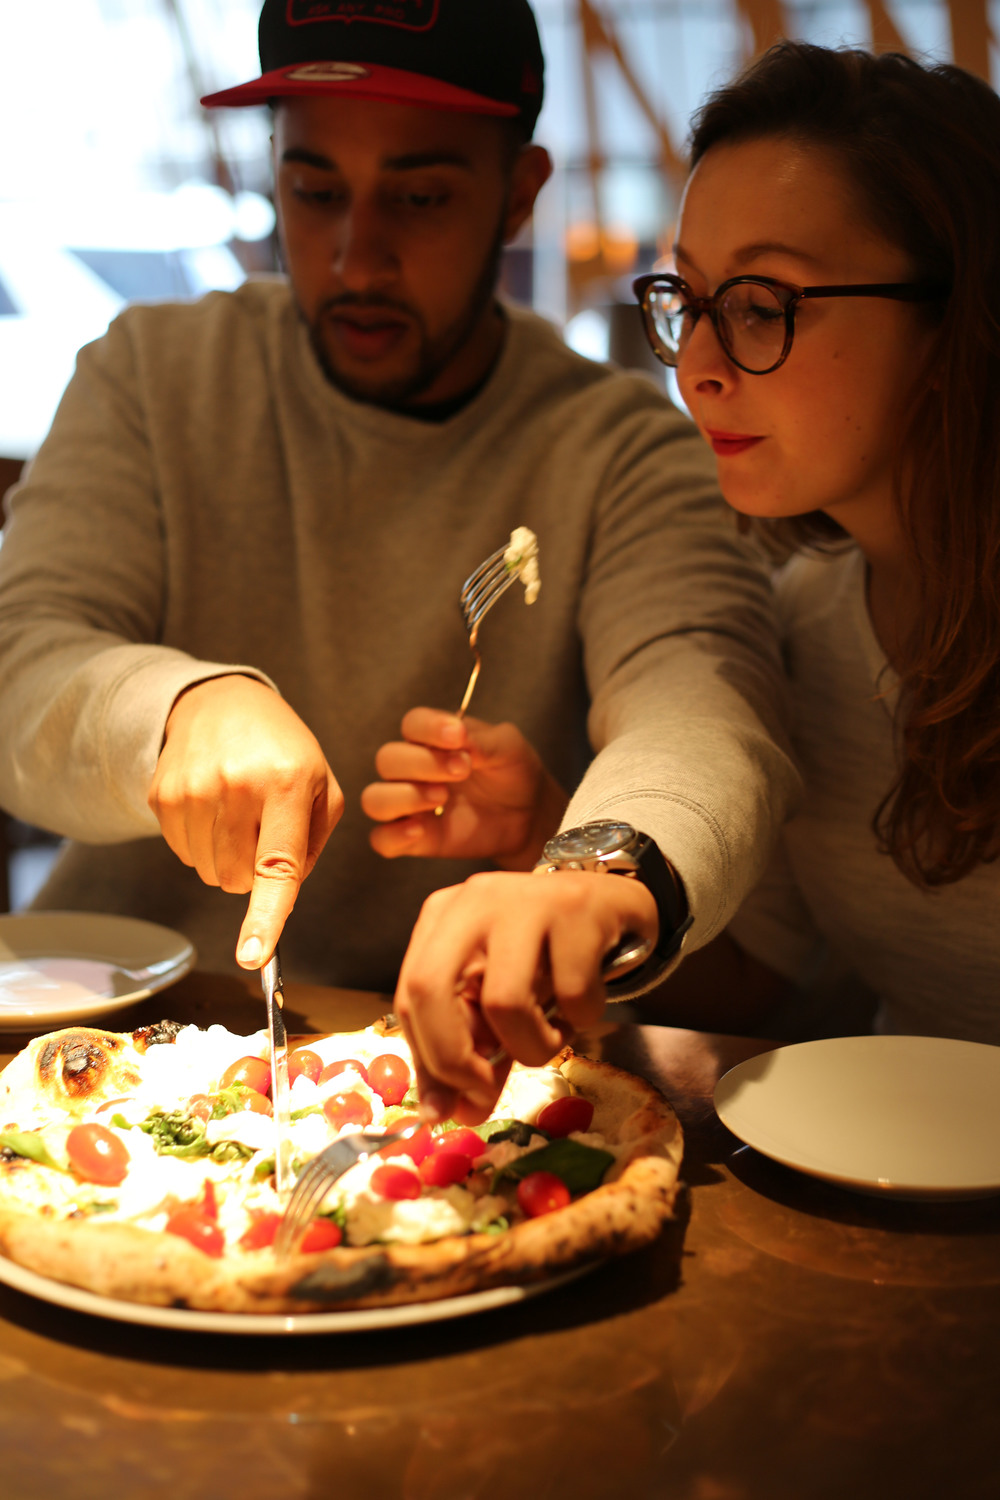 Honest London battle of the pizza review Princi burrata